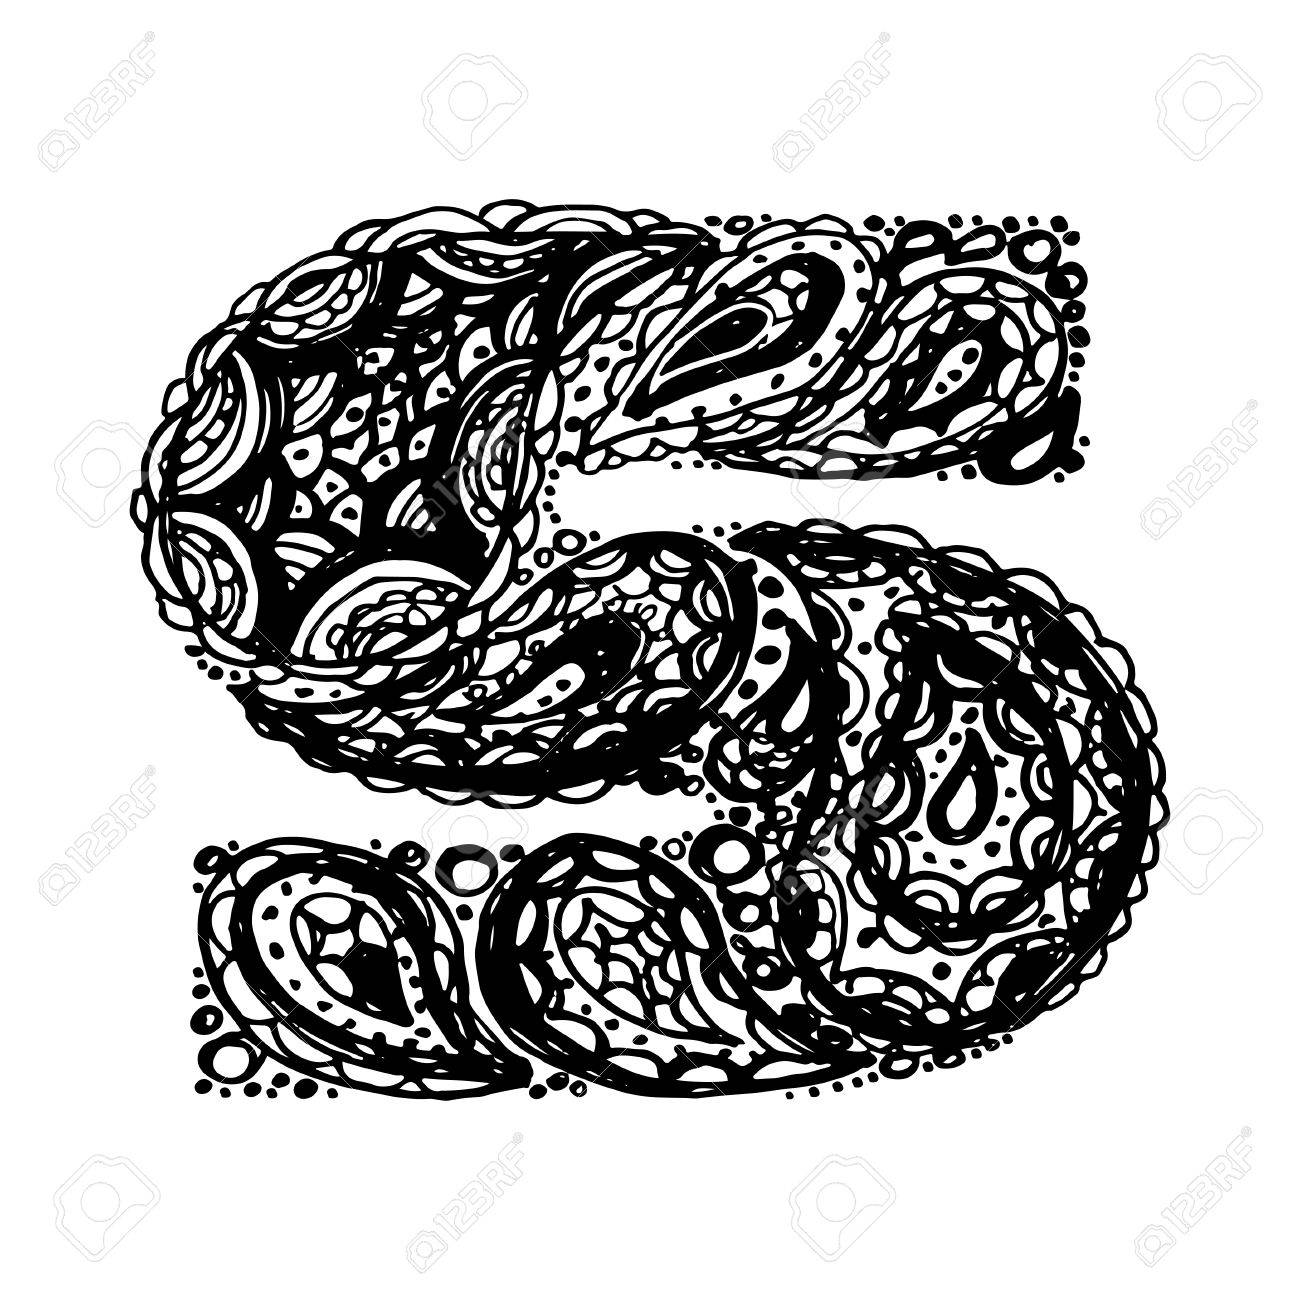 Letter S Decorative Alphabet With A Paisley Zen Doodle Tattoo Ornaments Filling Display Font